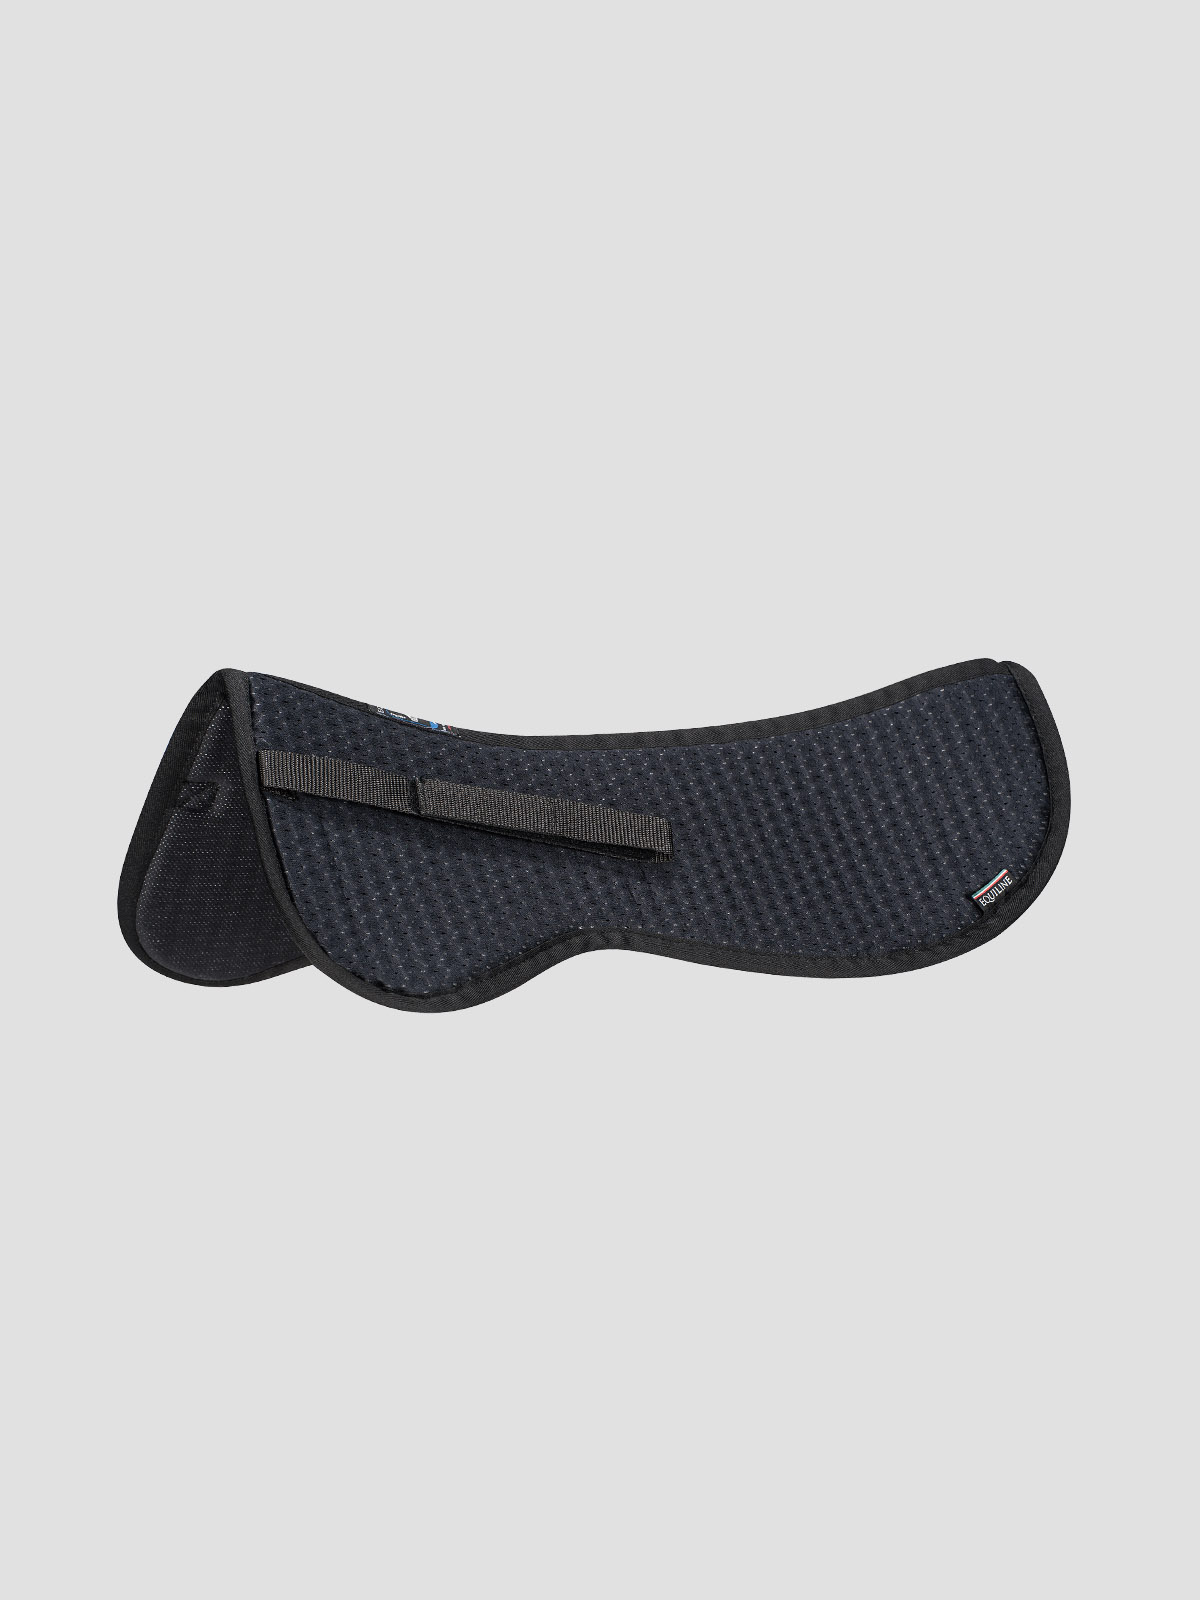 Equiline Shock Absorber Half Pad in black